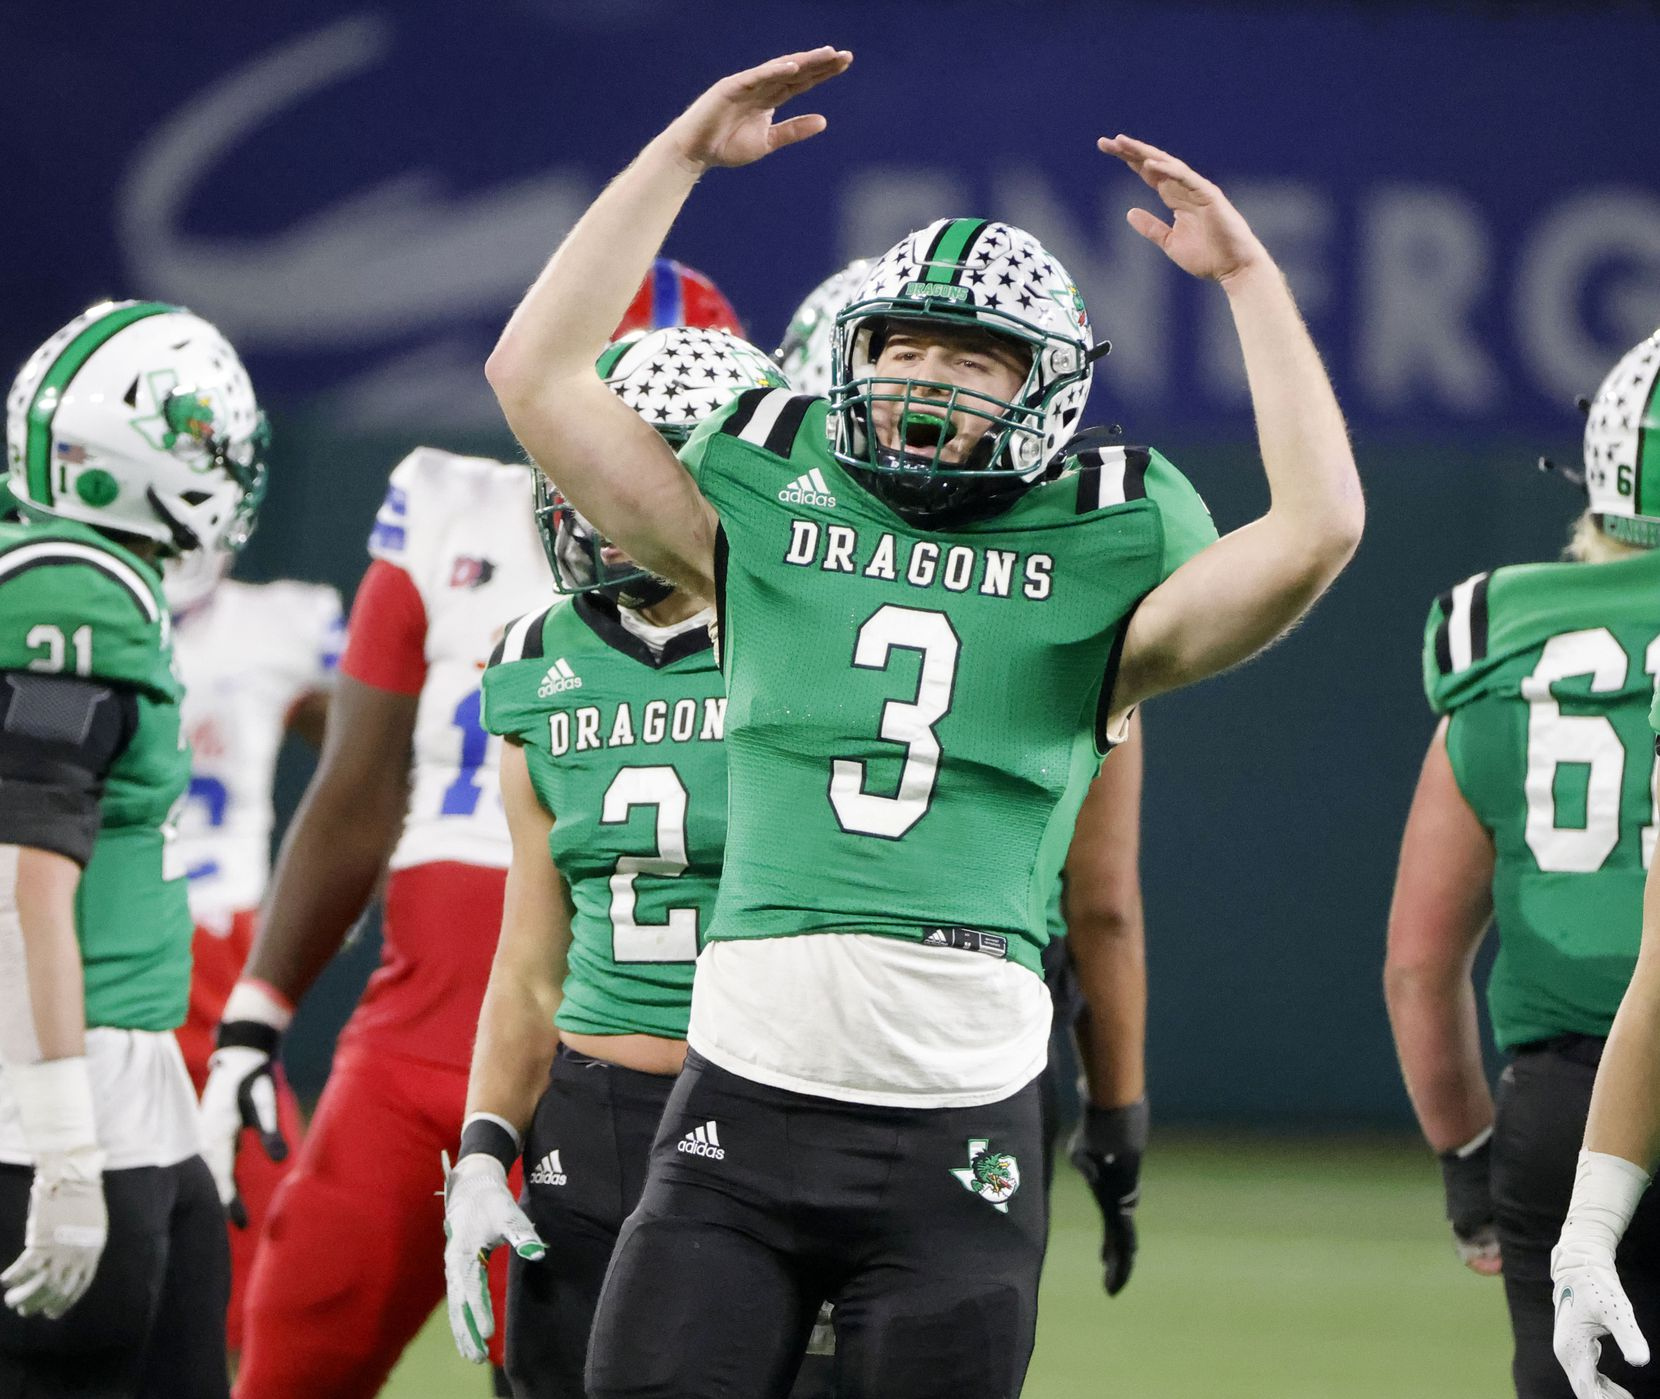 Southlake quarterback Quinn Ewers (3) reacts as Southlake defeated Duncanville 34-27 during the Class 6A Division I state high school football semifinal in Arlington, Texas on Jan. 9, 2020. (Michael Ainsworth)